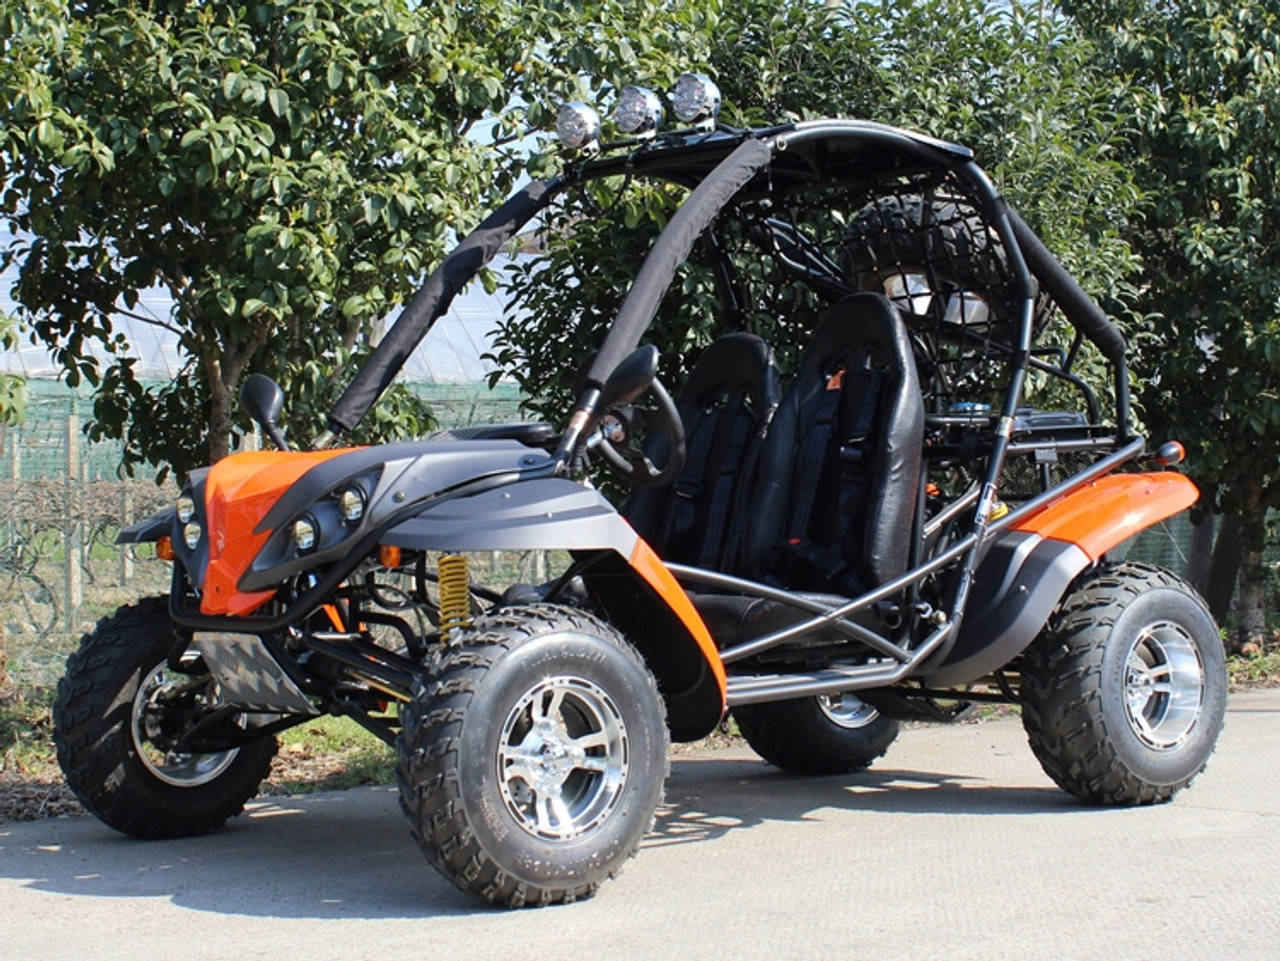 Dongfang DF200GKR 168.9CC Go Kart, Single Cylinder, Horizontal Type, 4-Stroke, Air-Cooled